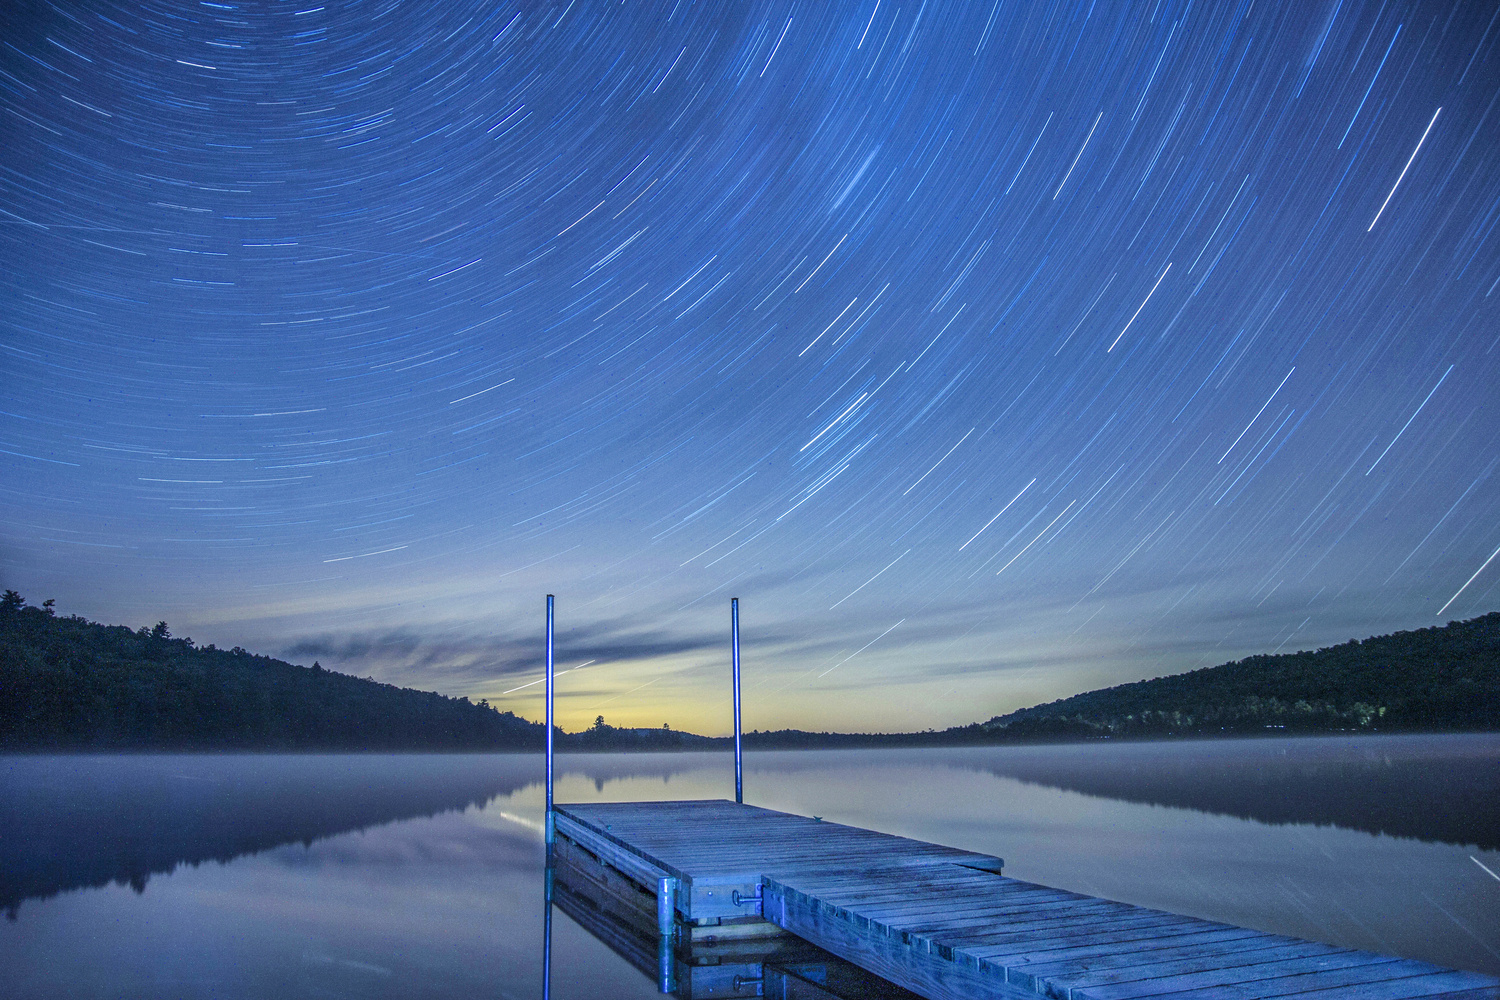 8th Lake Star Trails by Steve Shannon